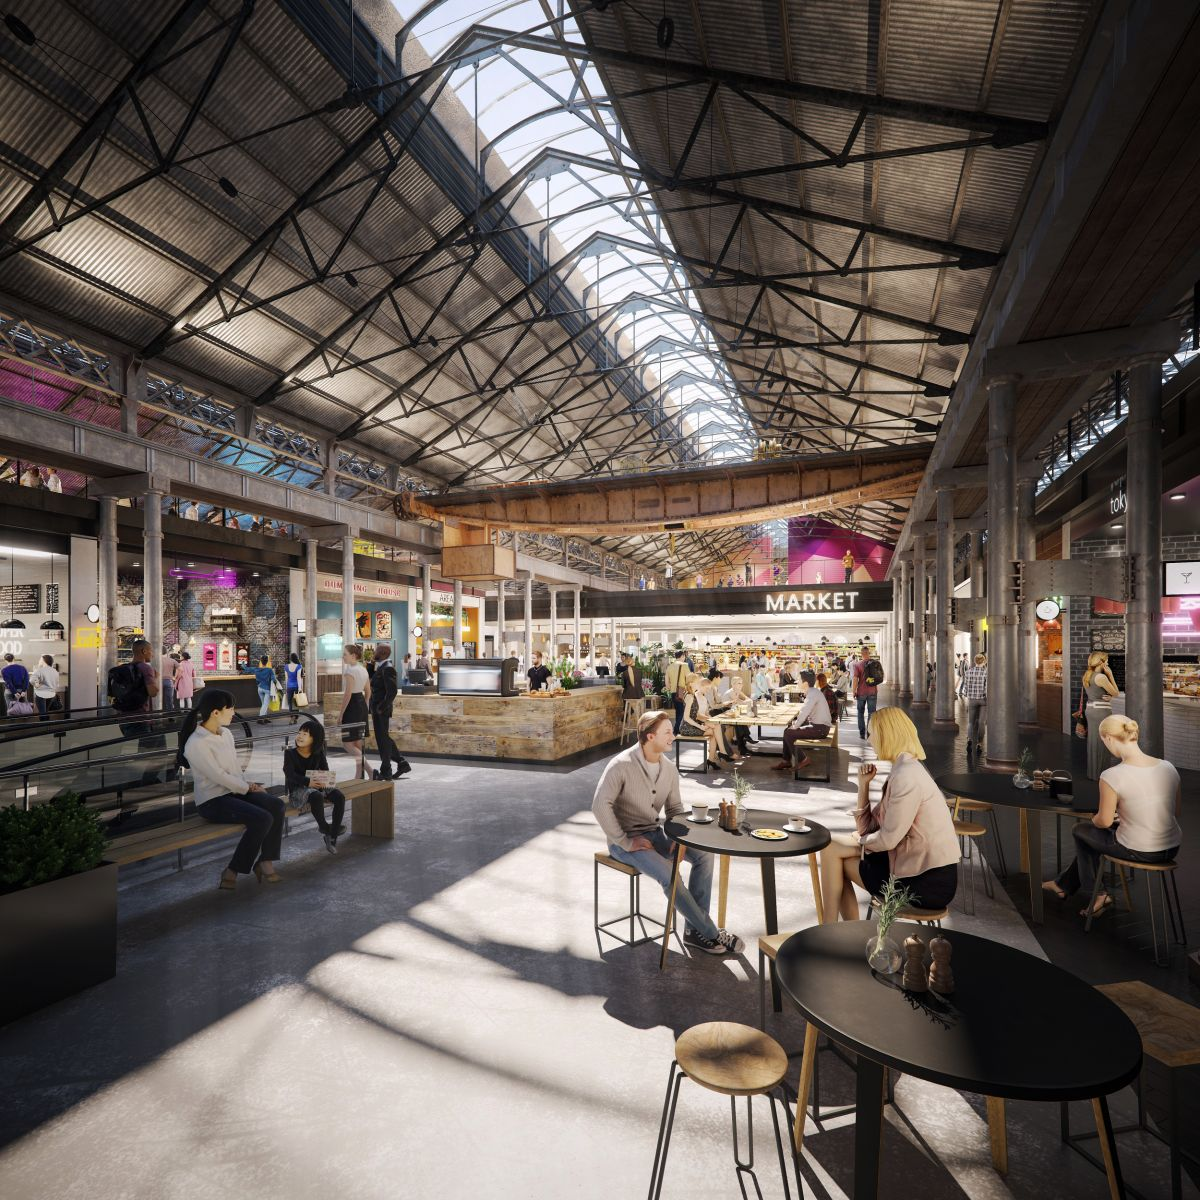 Food markets and artisan retail spaces will make the site a lifestyle precinct. Image: Supplied